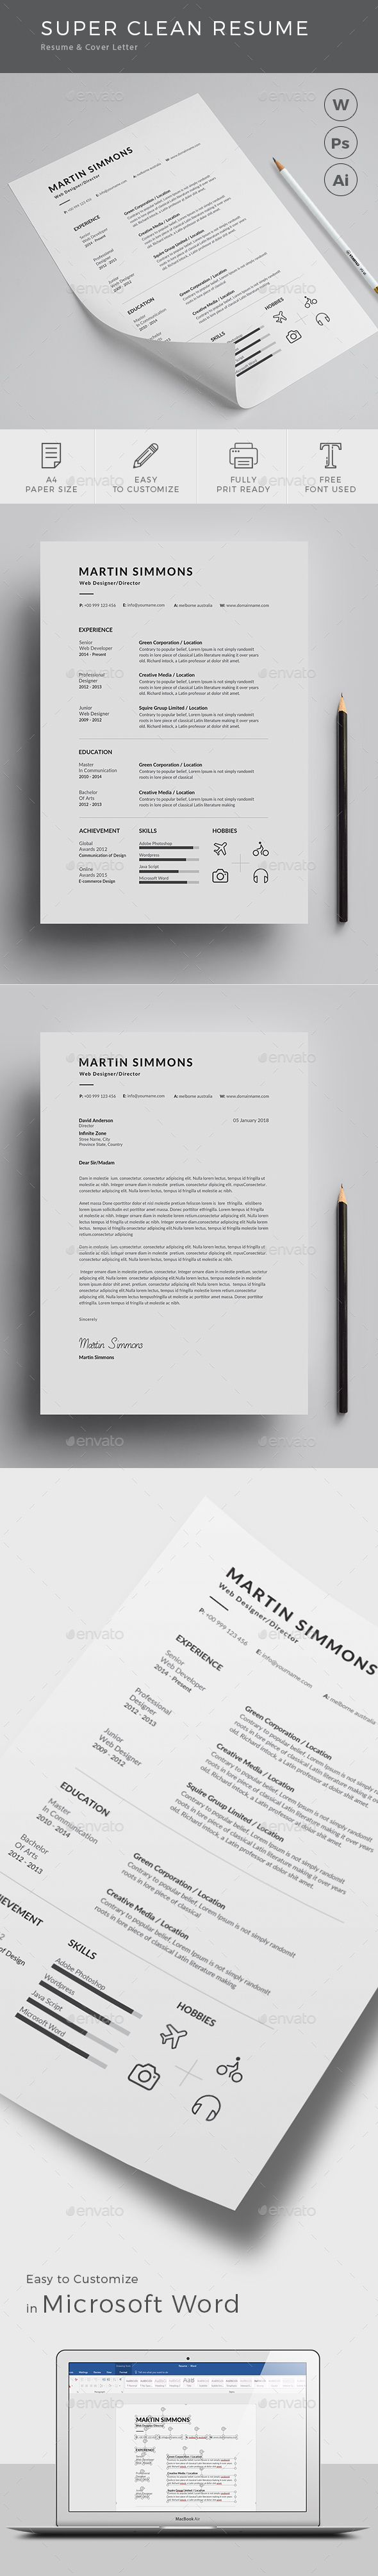 instructional design cover letter%0A Resume